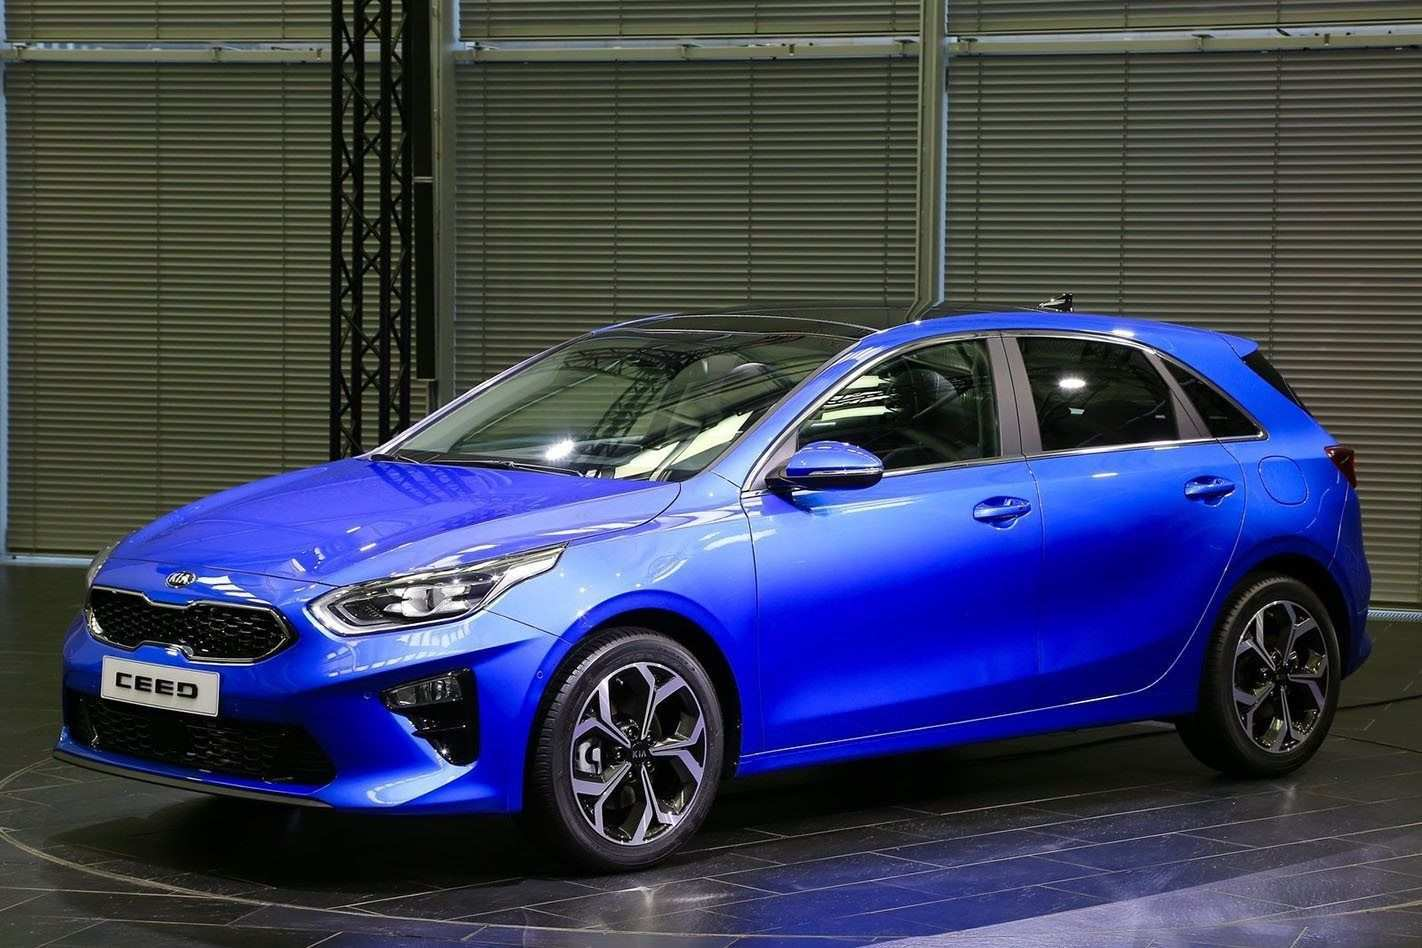 86 The Best Kia Cerato 2019 Price In Egypt Specs And Review